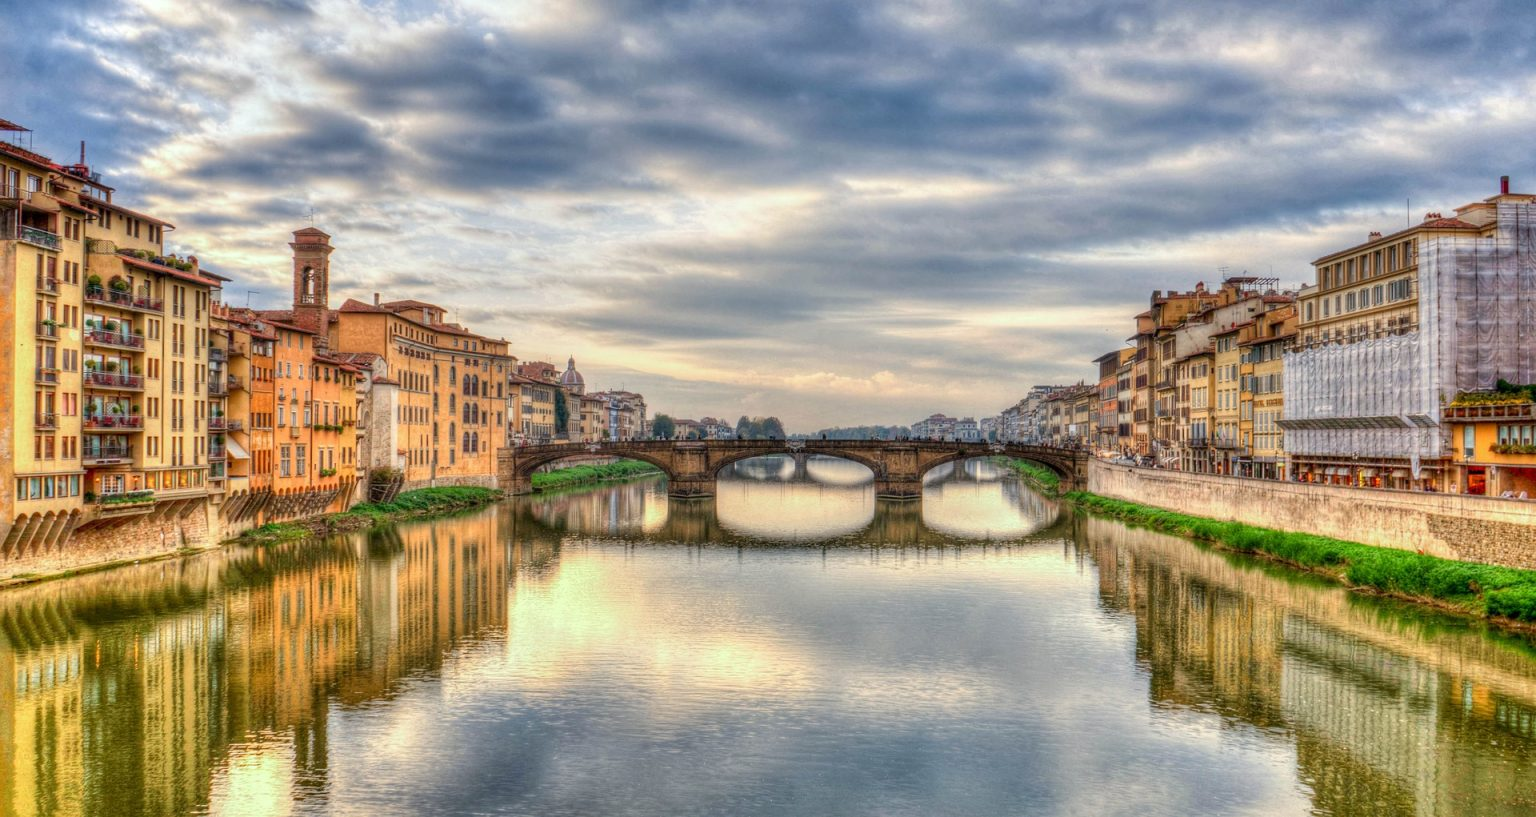 Florence Arno River Reflection